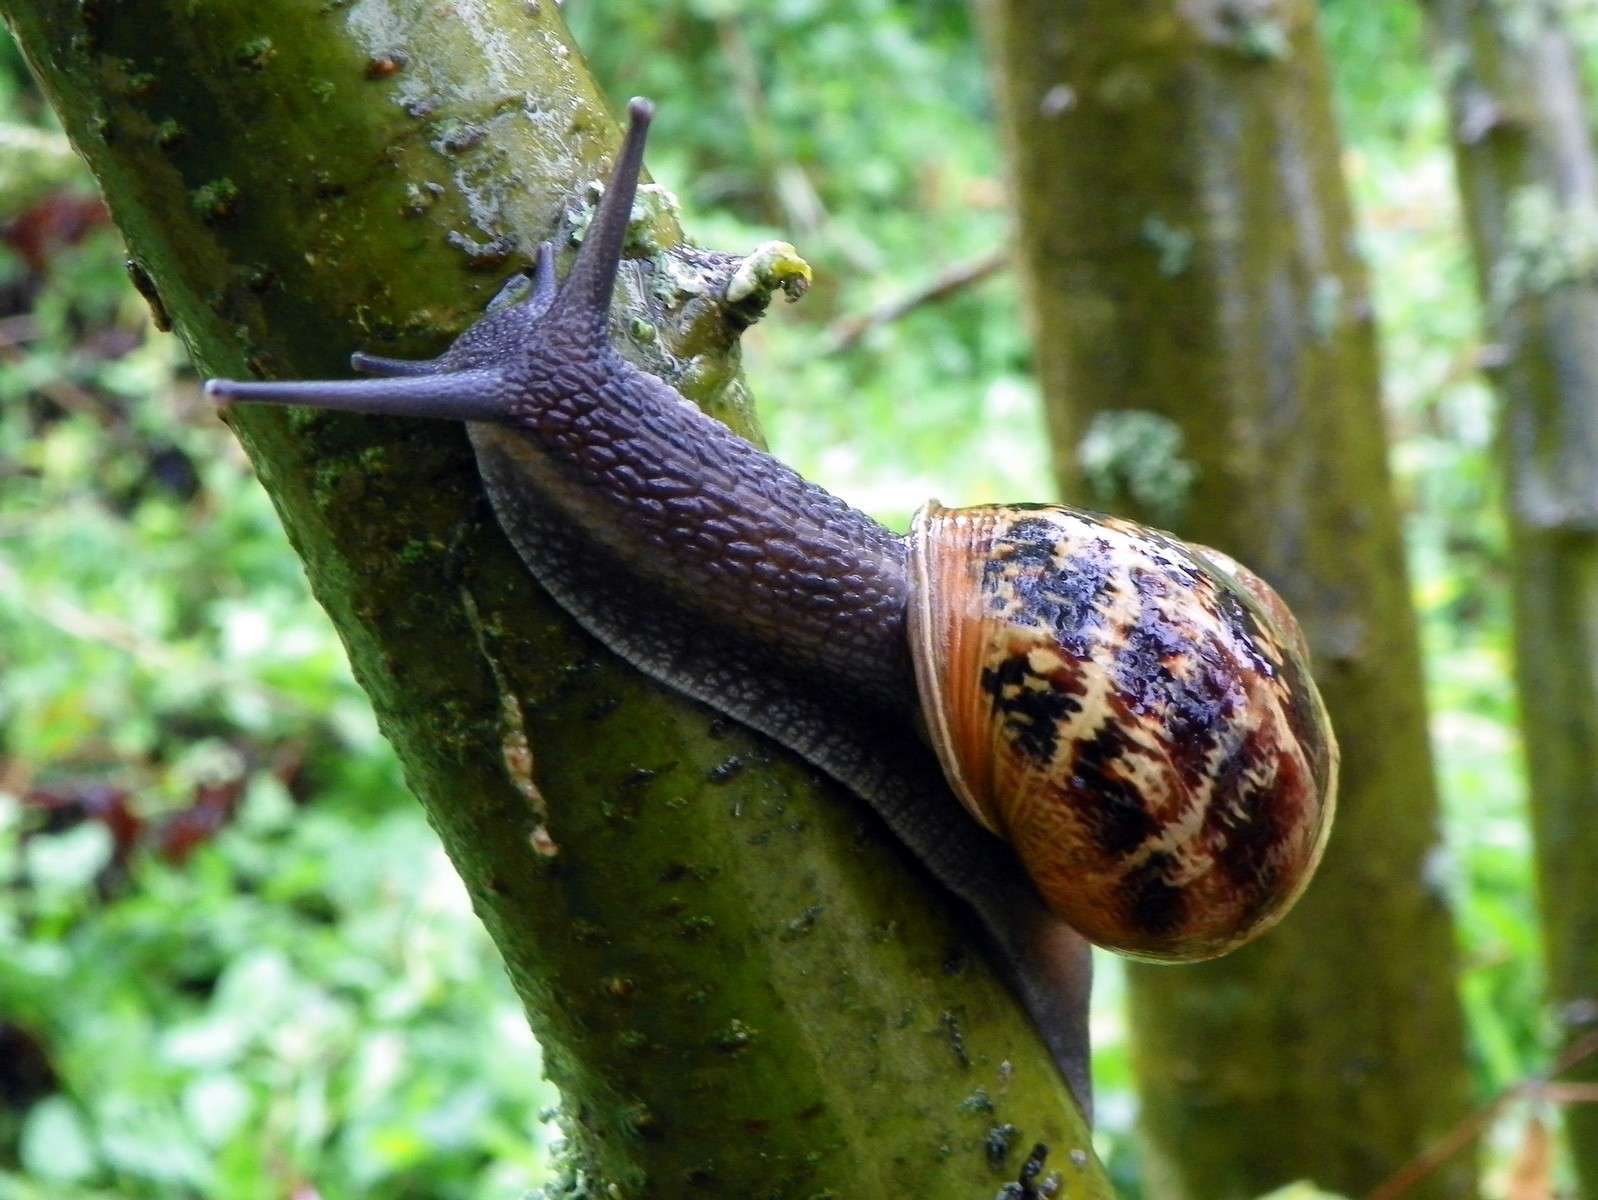 Petit-gris (Helix aspersa) © Peter O'Connor - Flickr